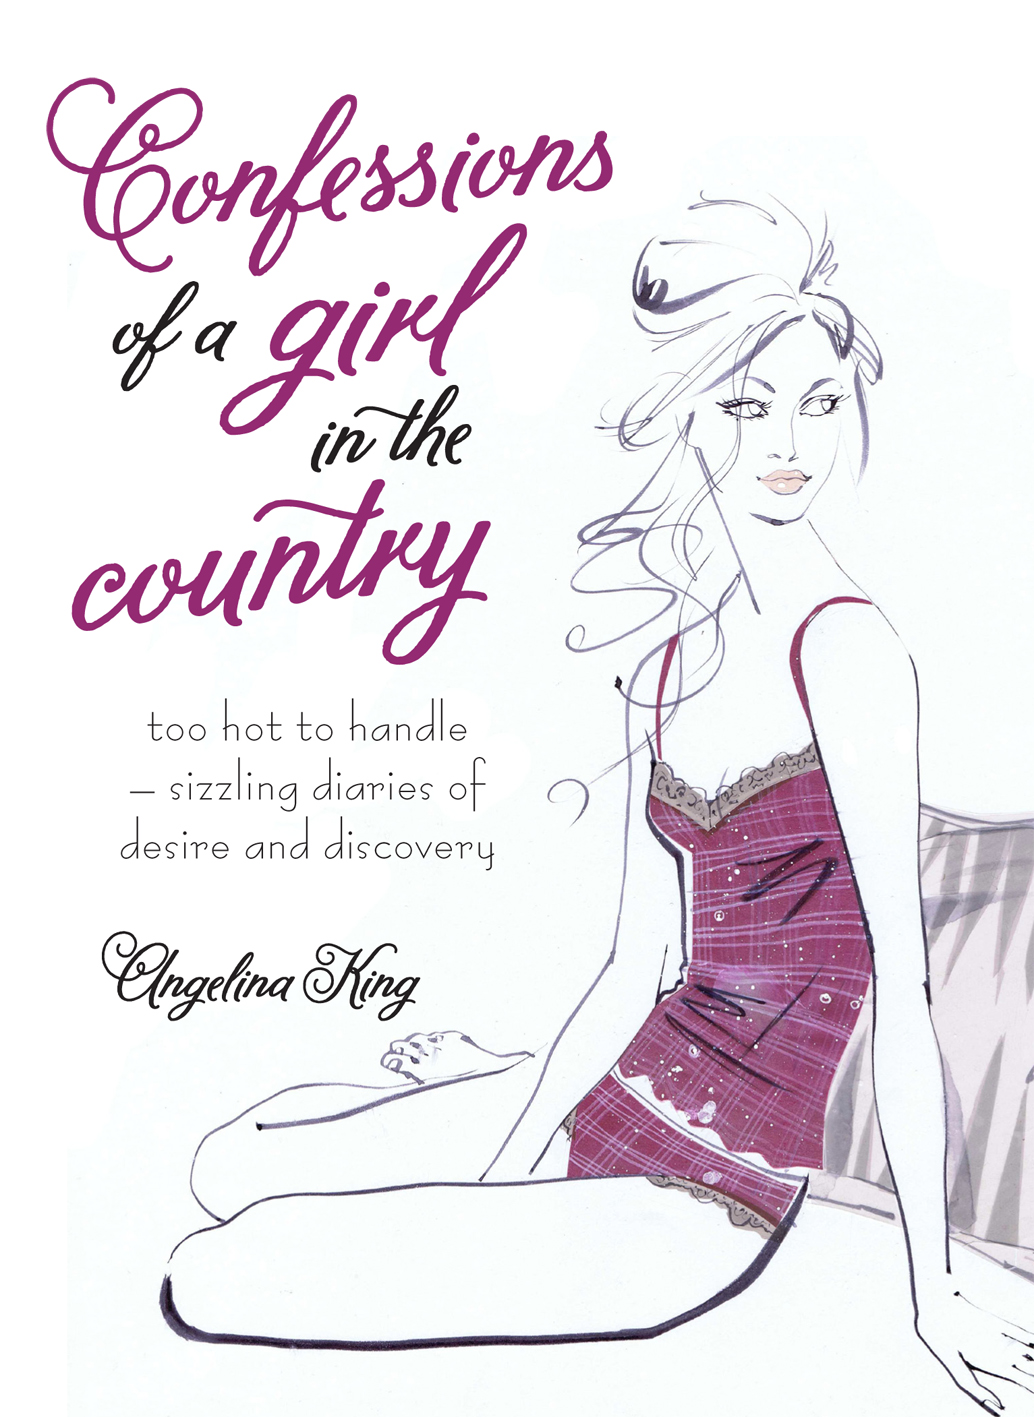 Confessions of a Girl in the Country